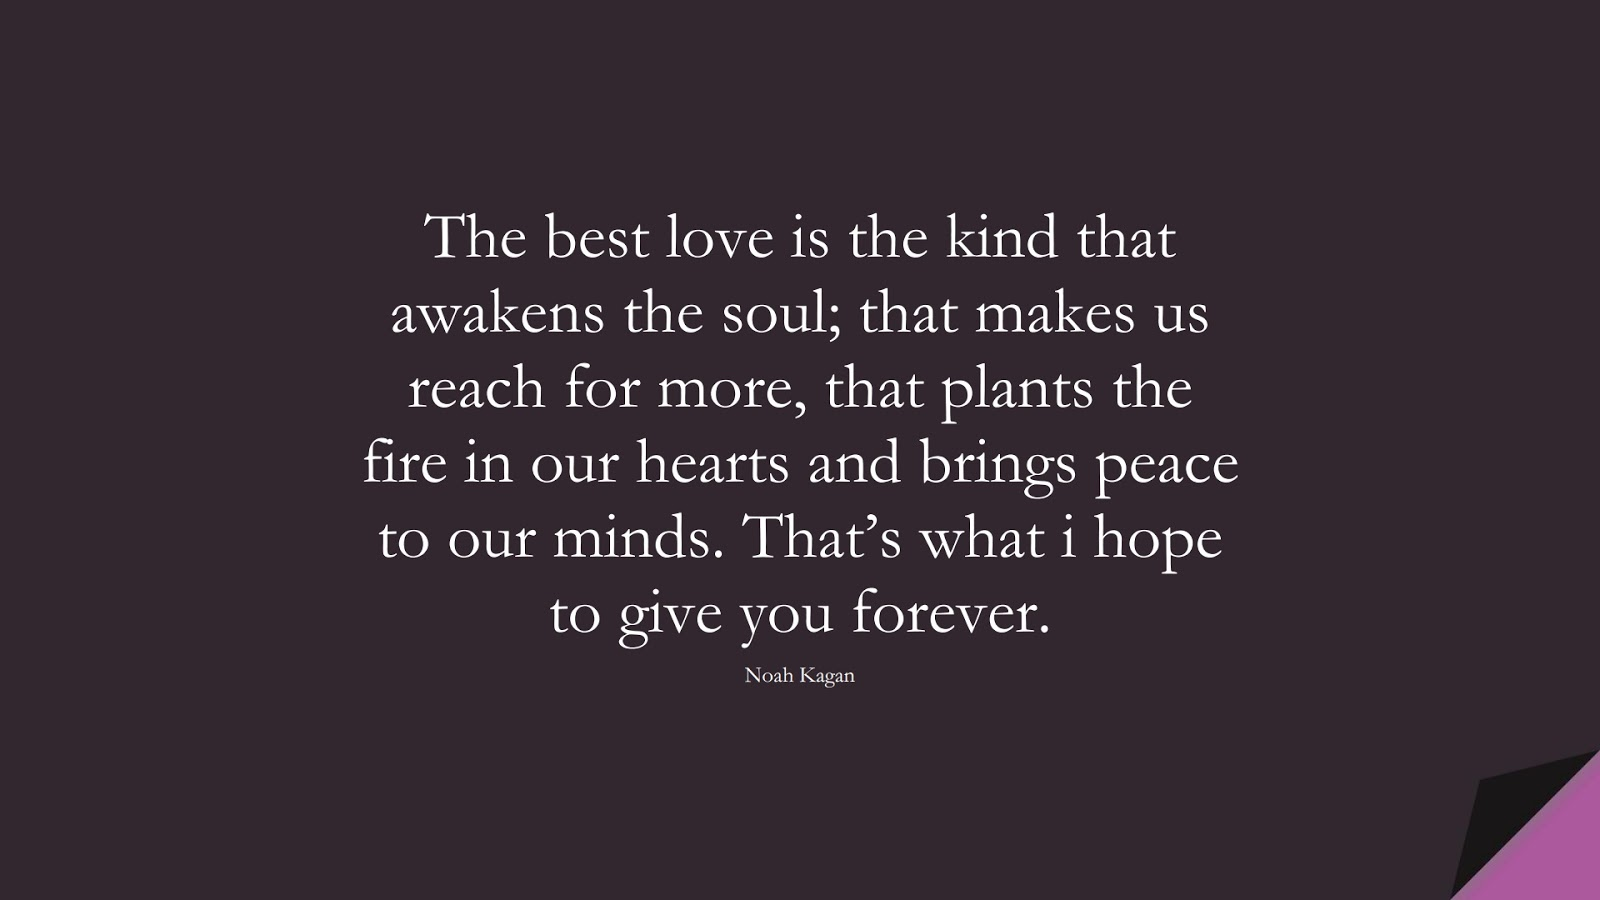 The best love is the kind that awakens the soul; that makes us reach for more, that plants the fire in our hearts and brings peace to our minds. That's what i hope to give you forever. (Noah Kagan);  #LoveQuotes